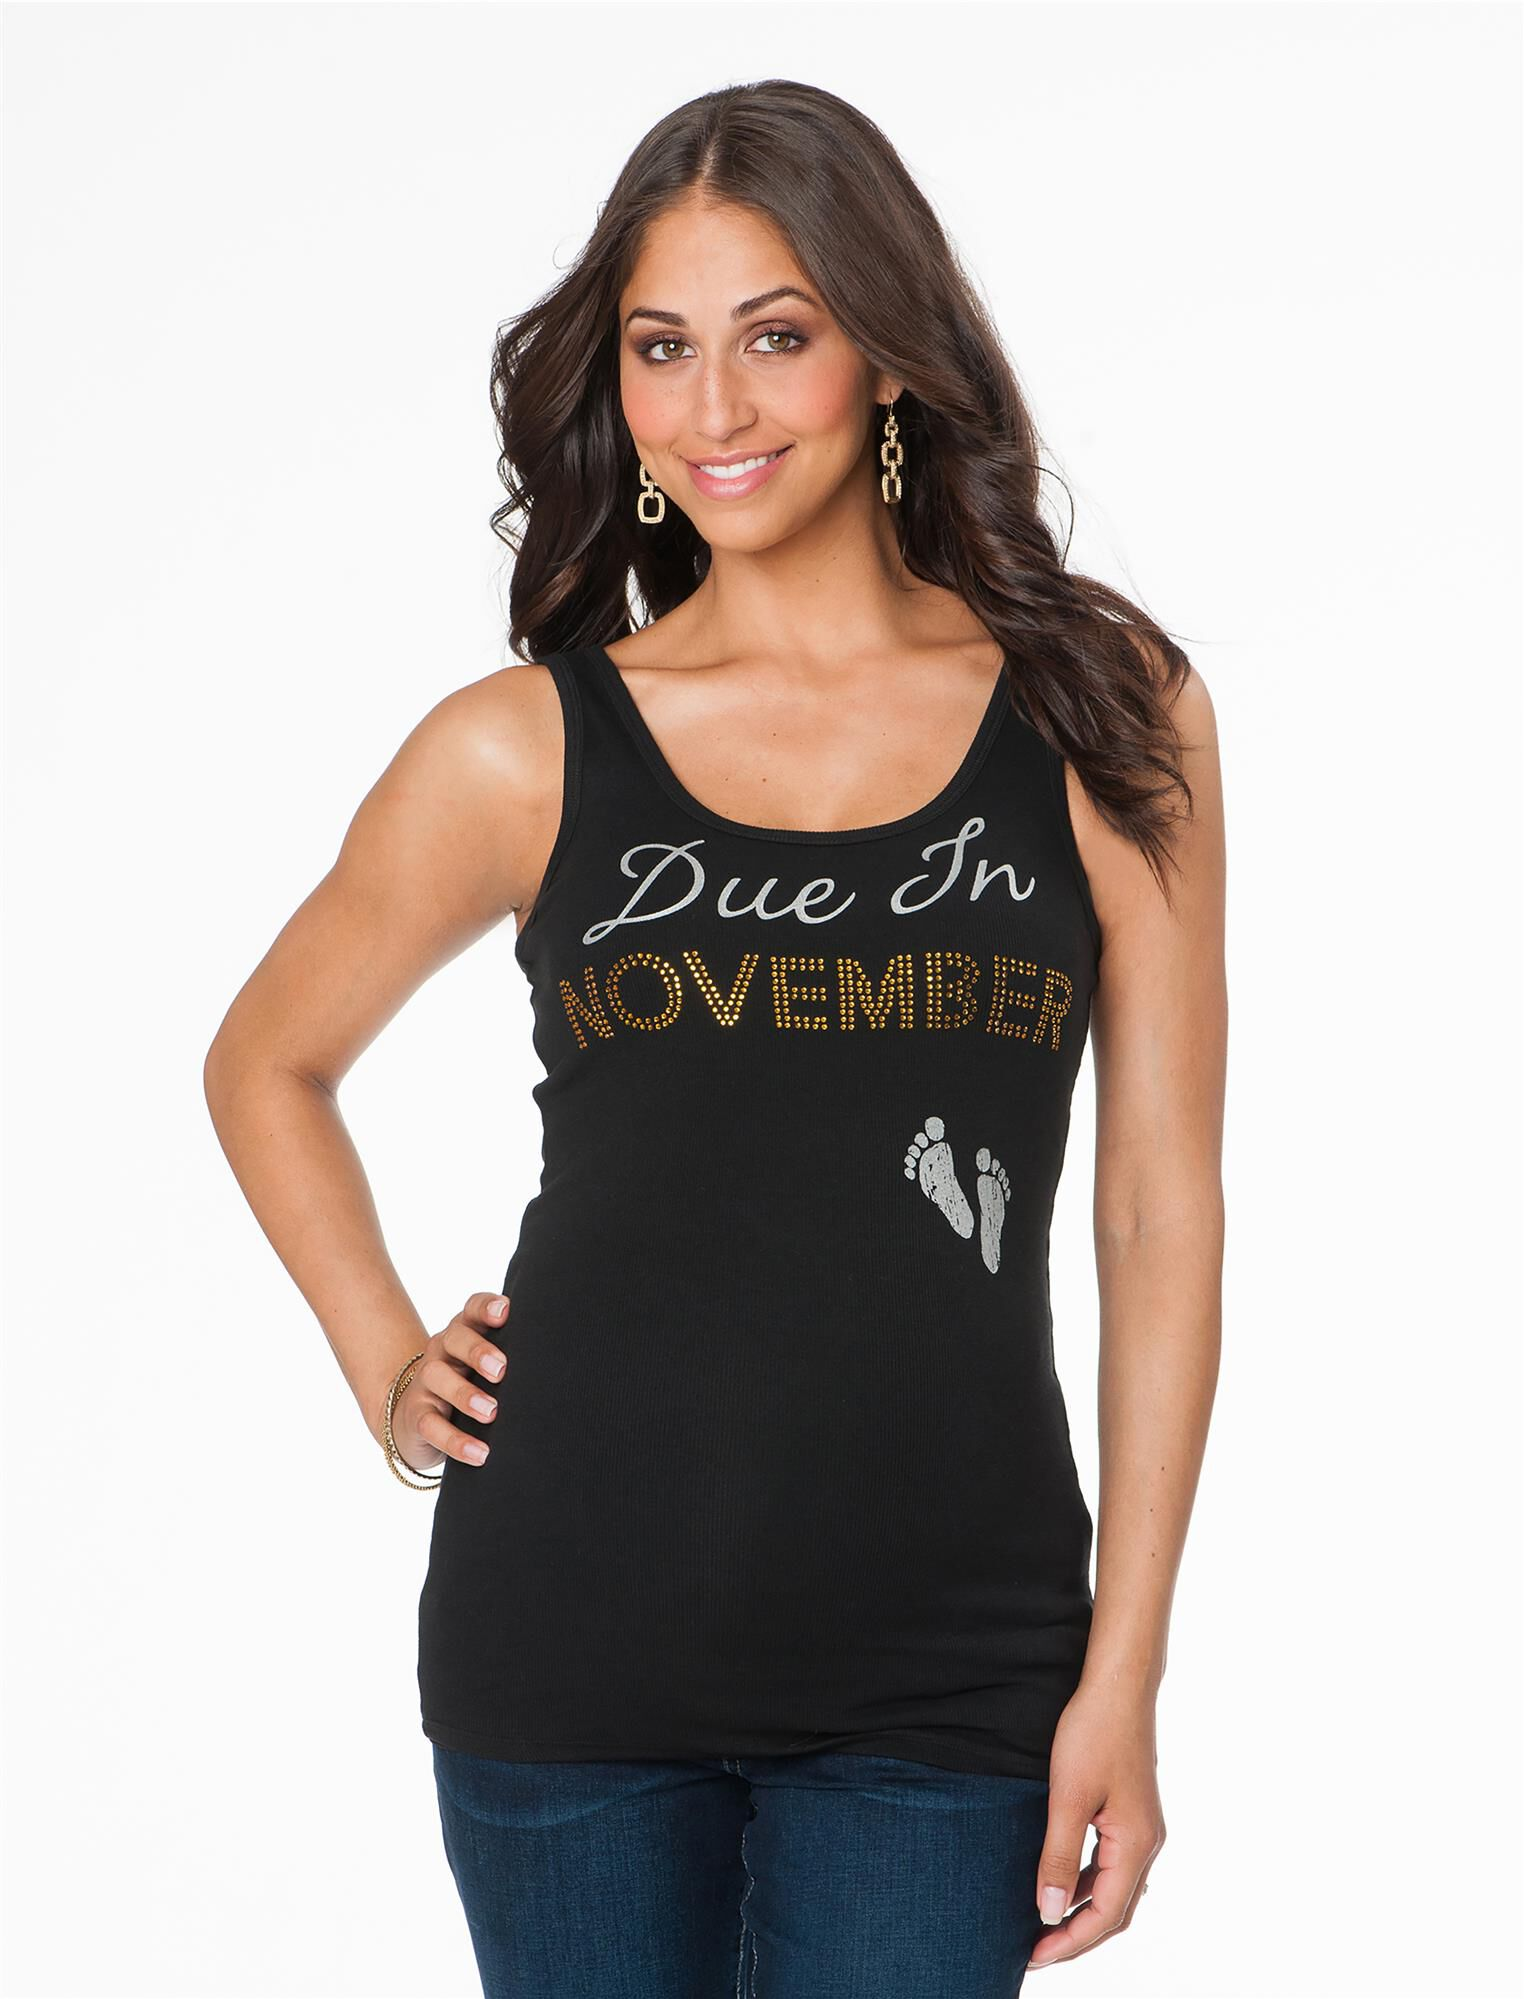 Due In November Maternity Tank Top